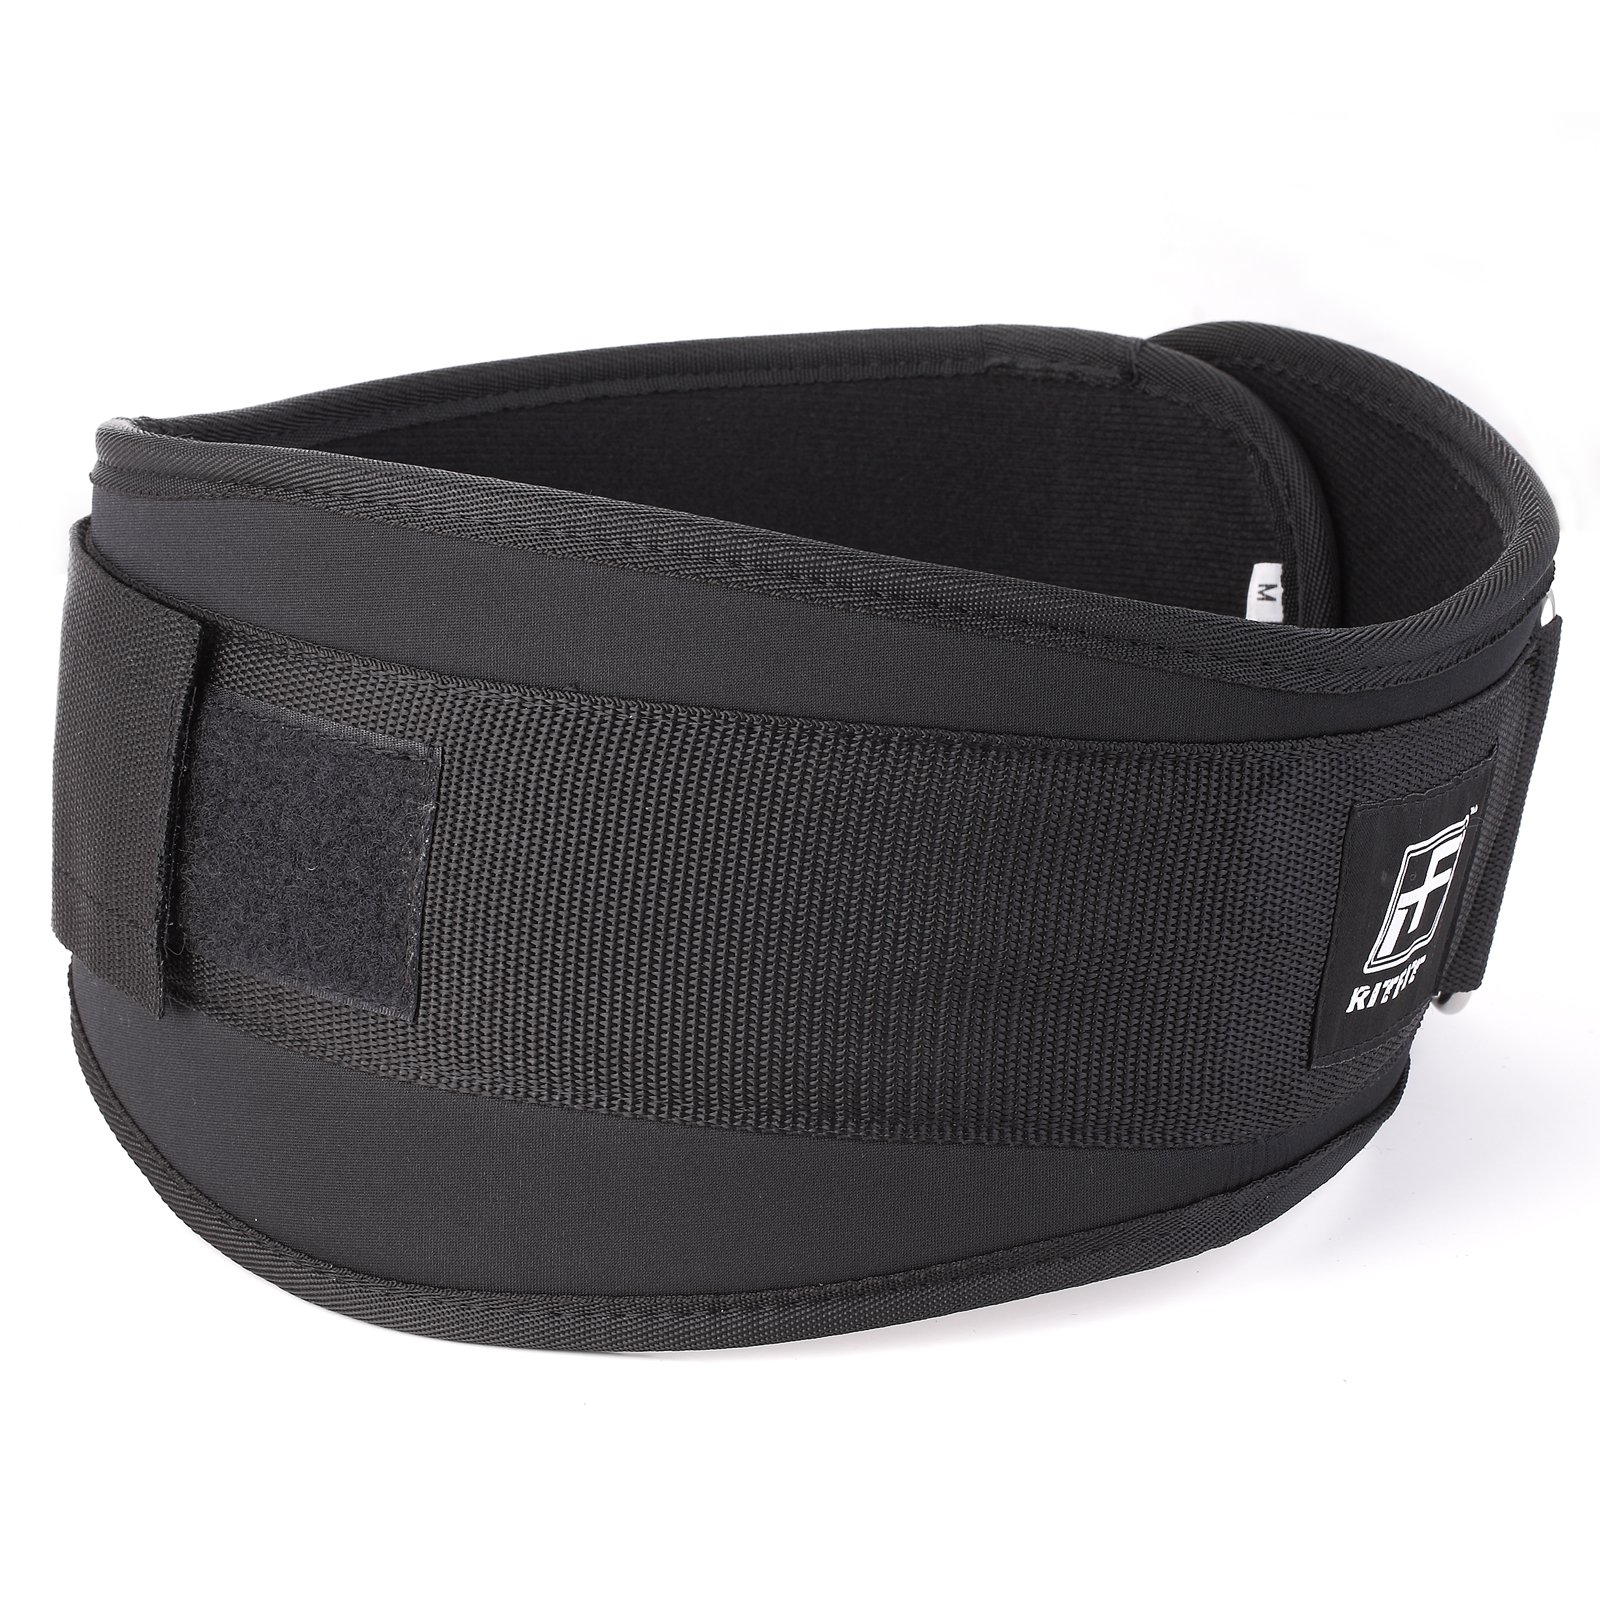 RitFit Weight Lifting Belt - Great for Squats, Clean, Lunges, Deadlift, Thrusters - Men and Women - 6 Inch - Multiple Color Choices - Firm & Comfortable Lumbar Support with Back Injury Protection by RitFit (Image #2)